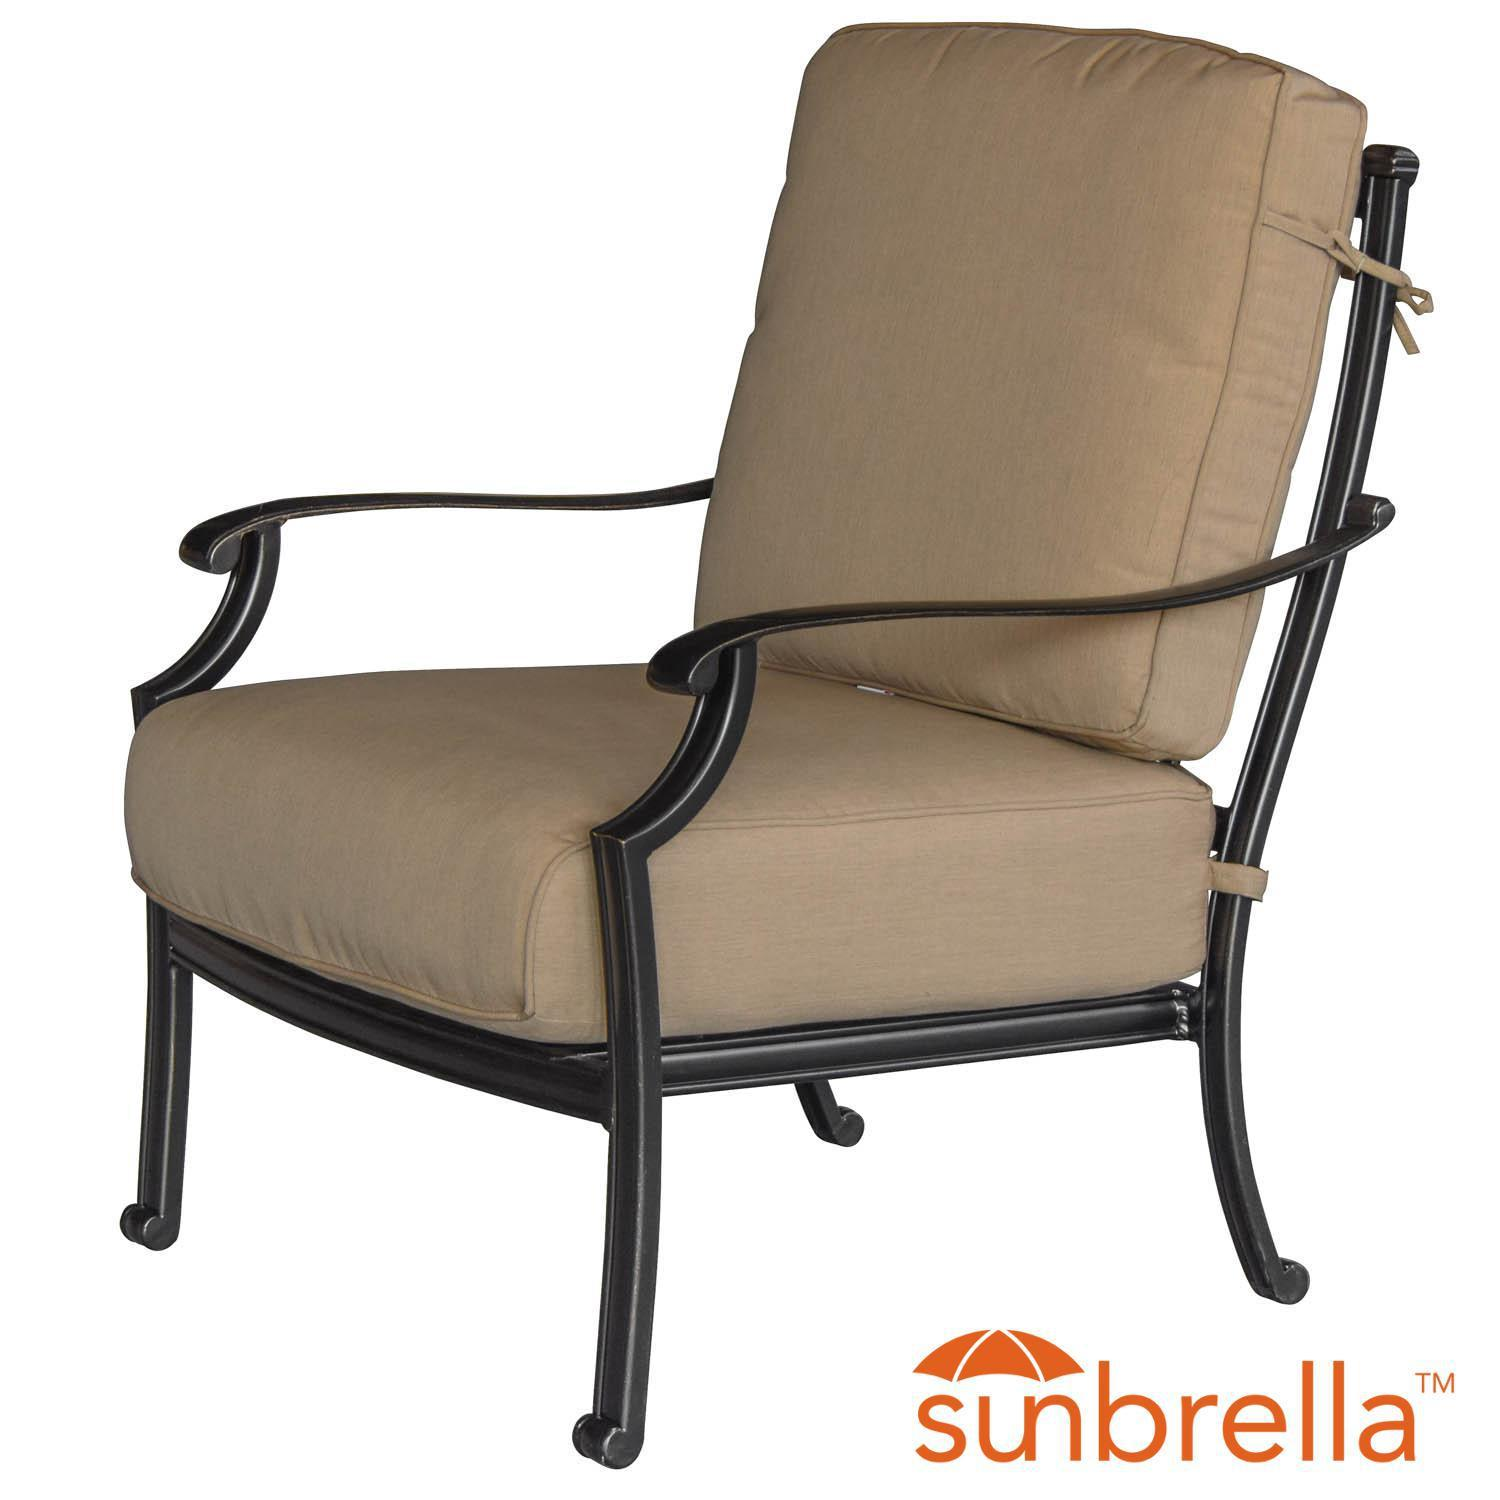 Pleasing Bocage Cast Aluminum Patio Club Chair W Sunbrella Heather Beige Cushions By Lakeview Outdoor Designs Home Interior And Landscaping Ponolsignezvosmurscom